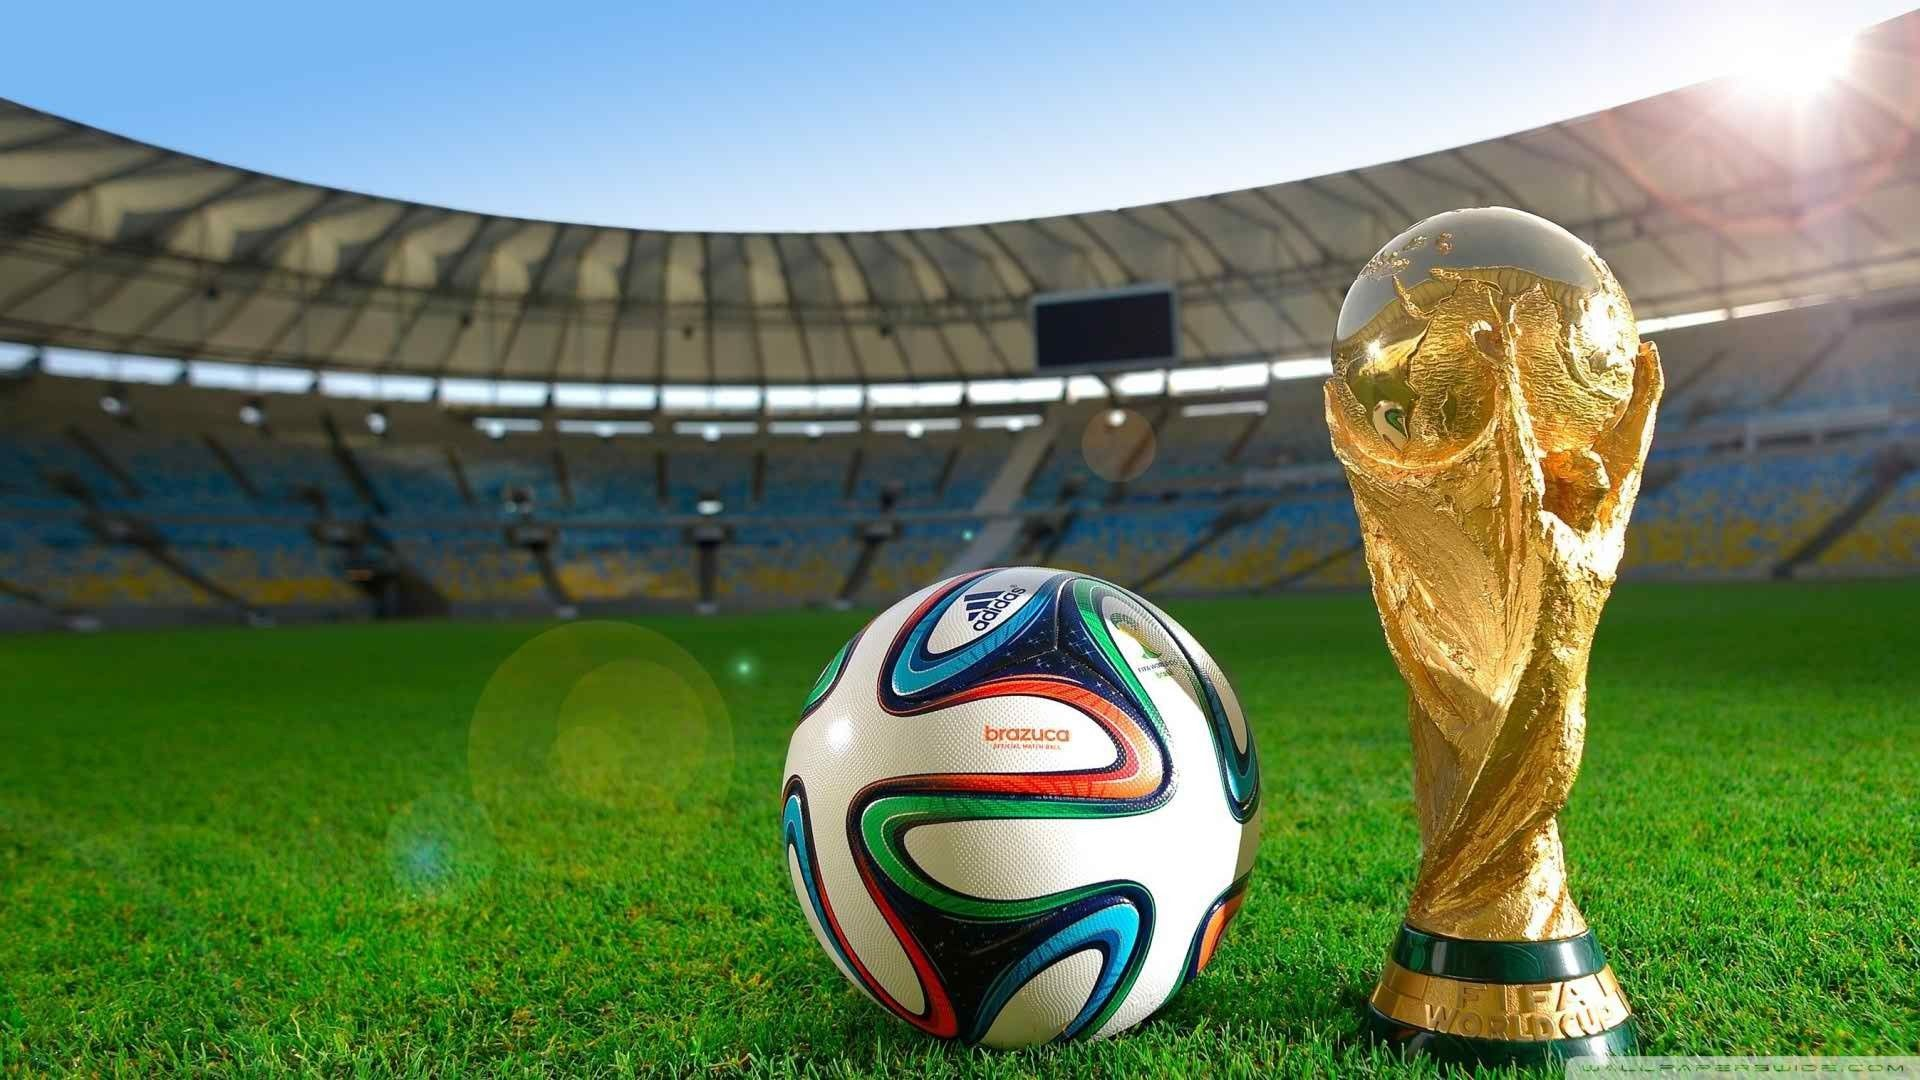 FIFA World Cup HD Wallpaper